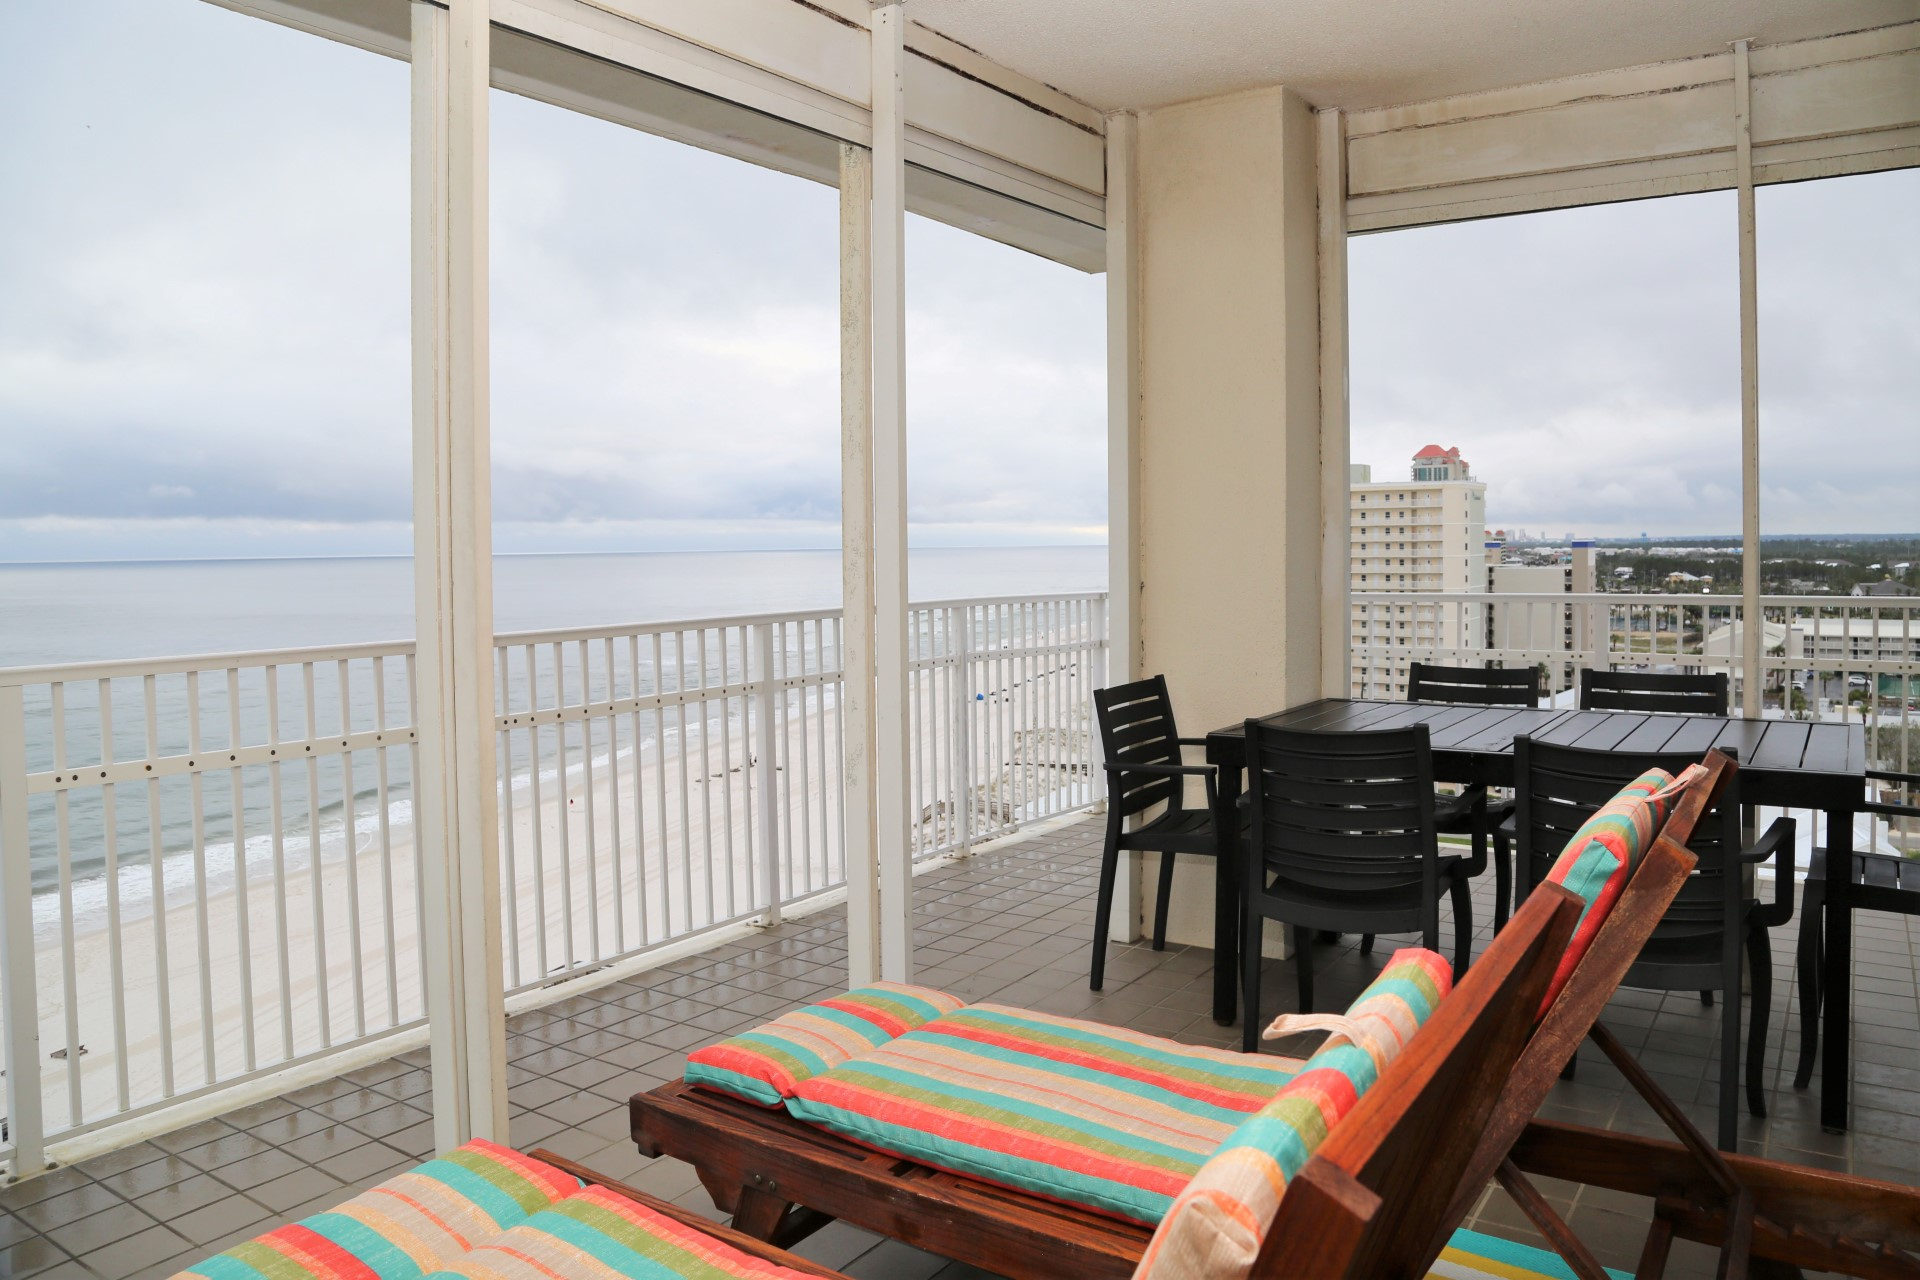 Lounge on your private balcony with a good book and views of